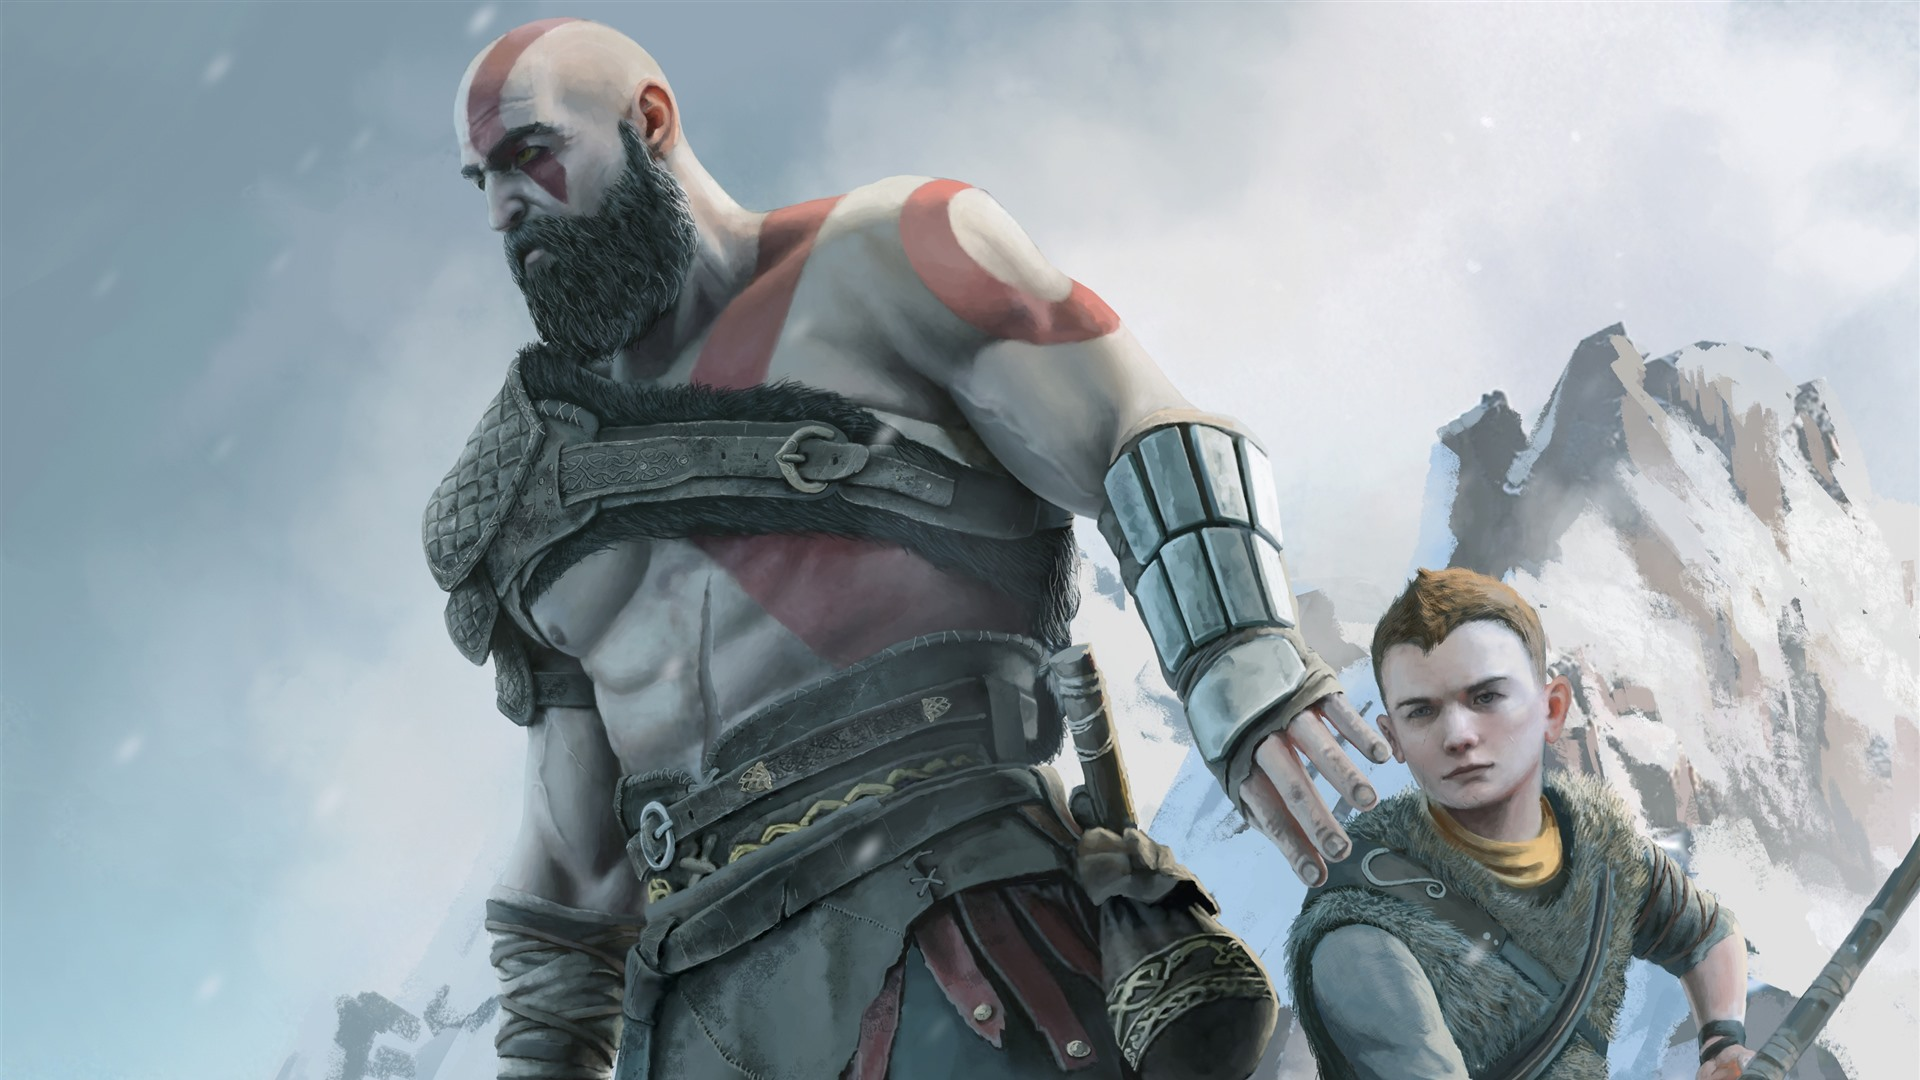 Wallpaper God Of War 4 Ps4 Game 2880x1800 Hd Picture Image